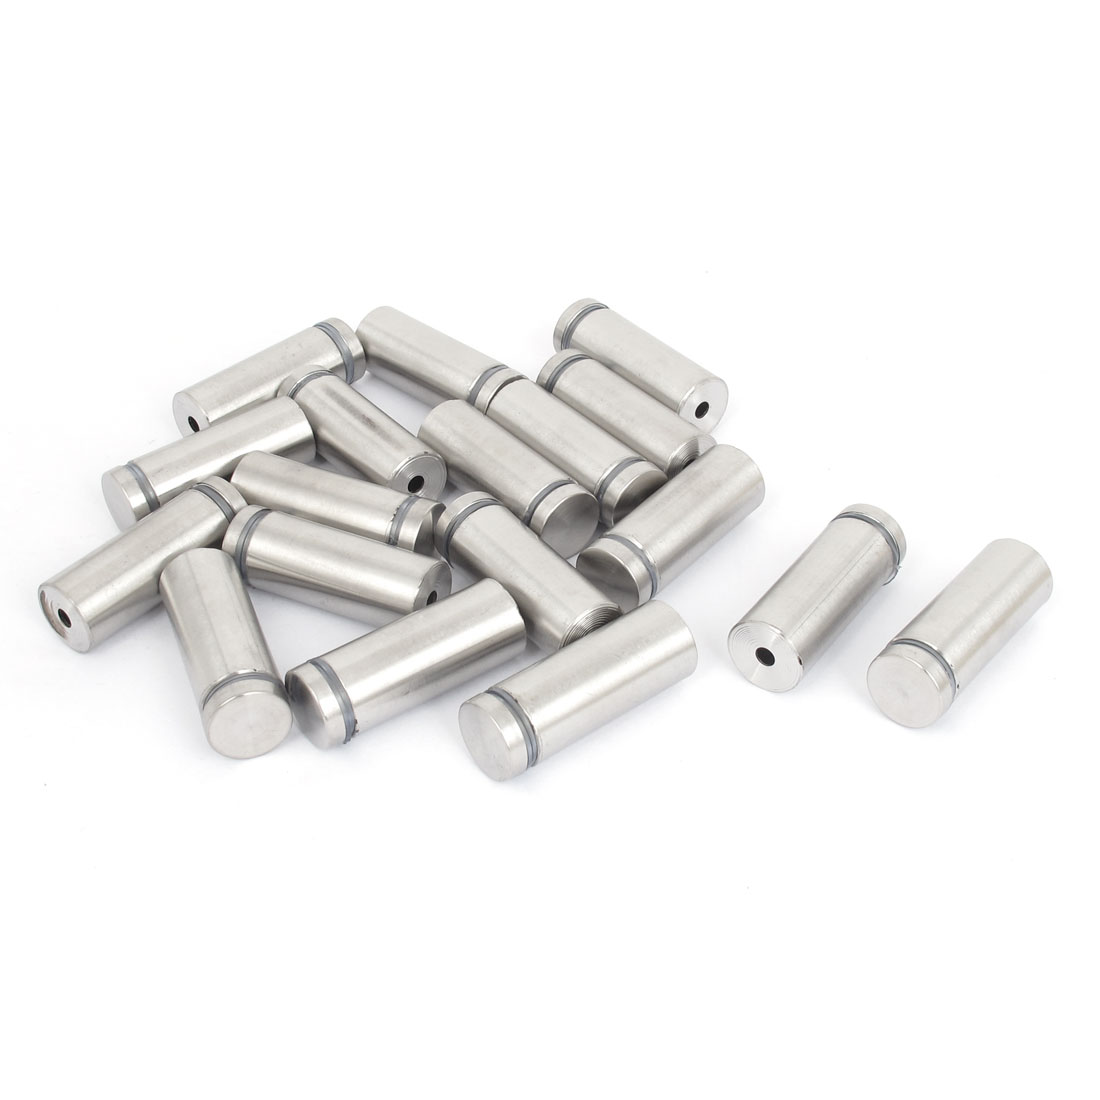 19mm x 50mm Stainless Steel Advertising Frameless Glass Standoff Pins 18pcs